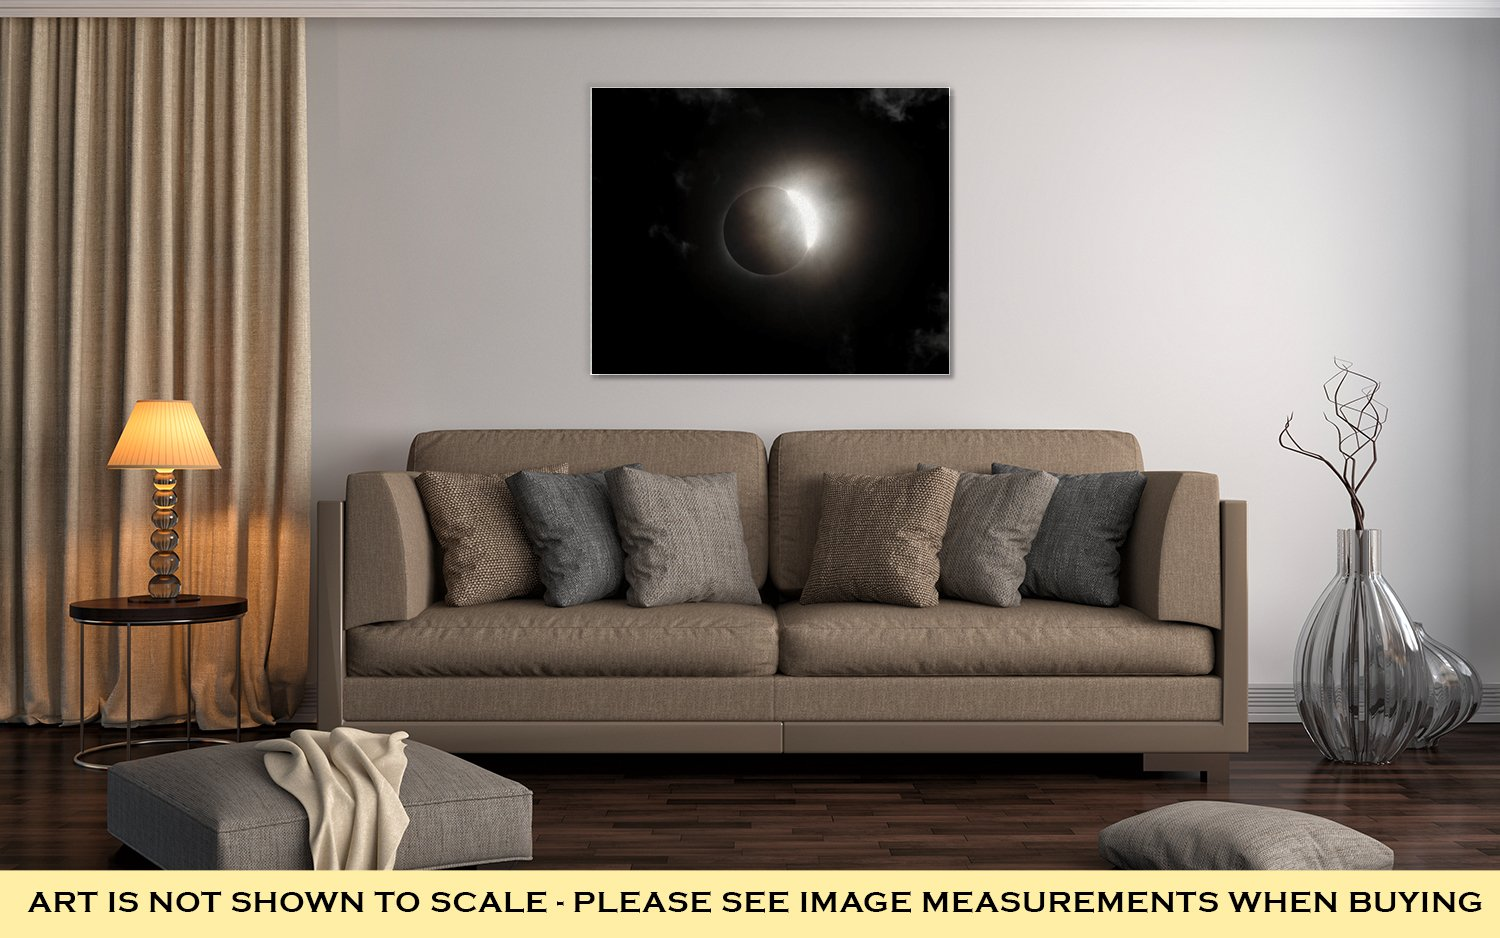 Ashley Canvas Total Solar Eclipse Diamond Ring with Clouds, Wall Art Home Decor, Ready to Hang, Color, 16x20, AG6464641